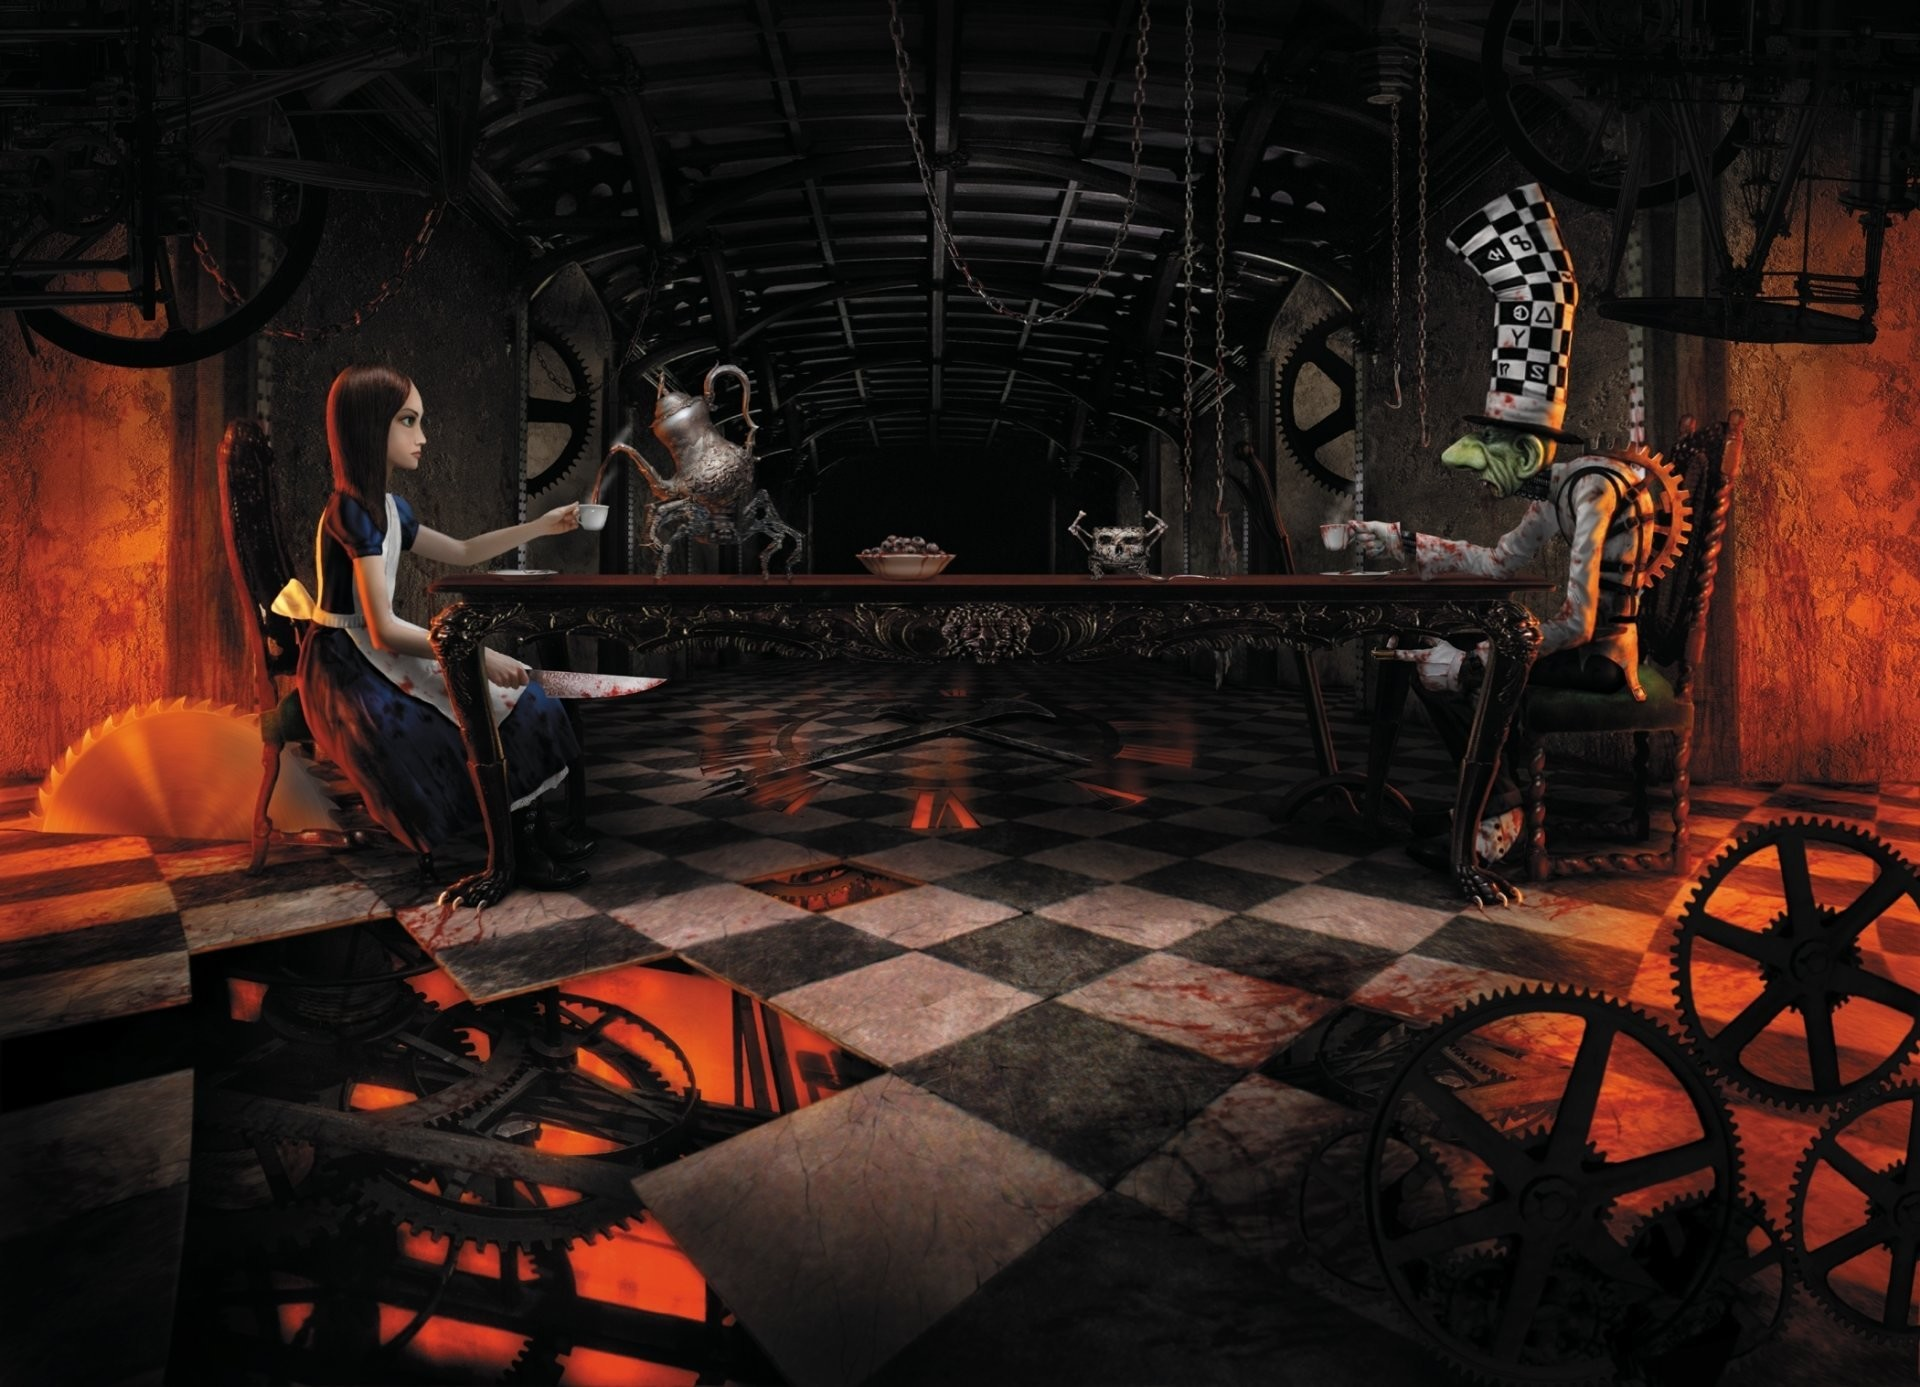 1920x1387 alice hatter mad tea party do dial alice mad hatter american mcgee's alice